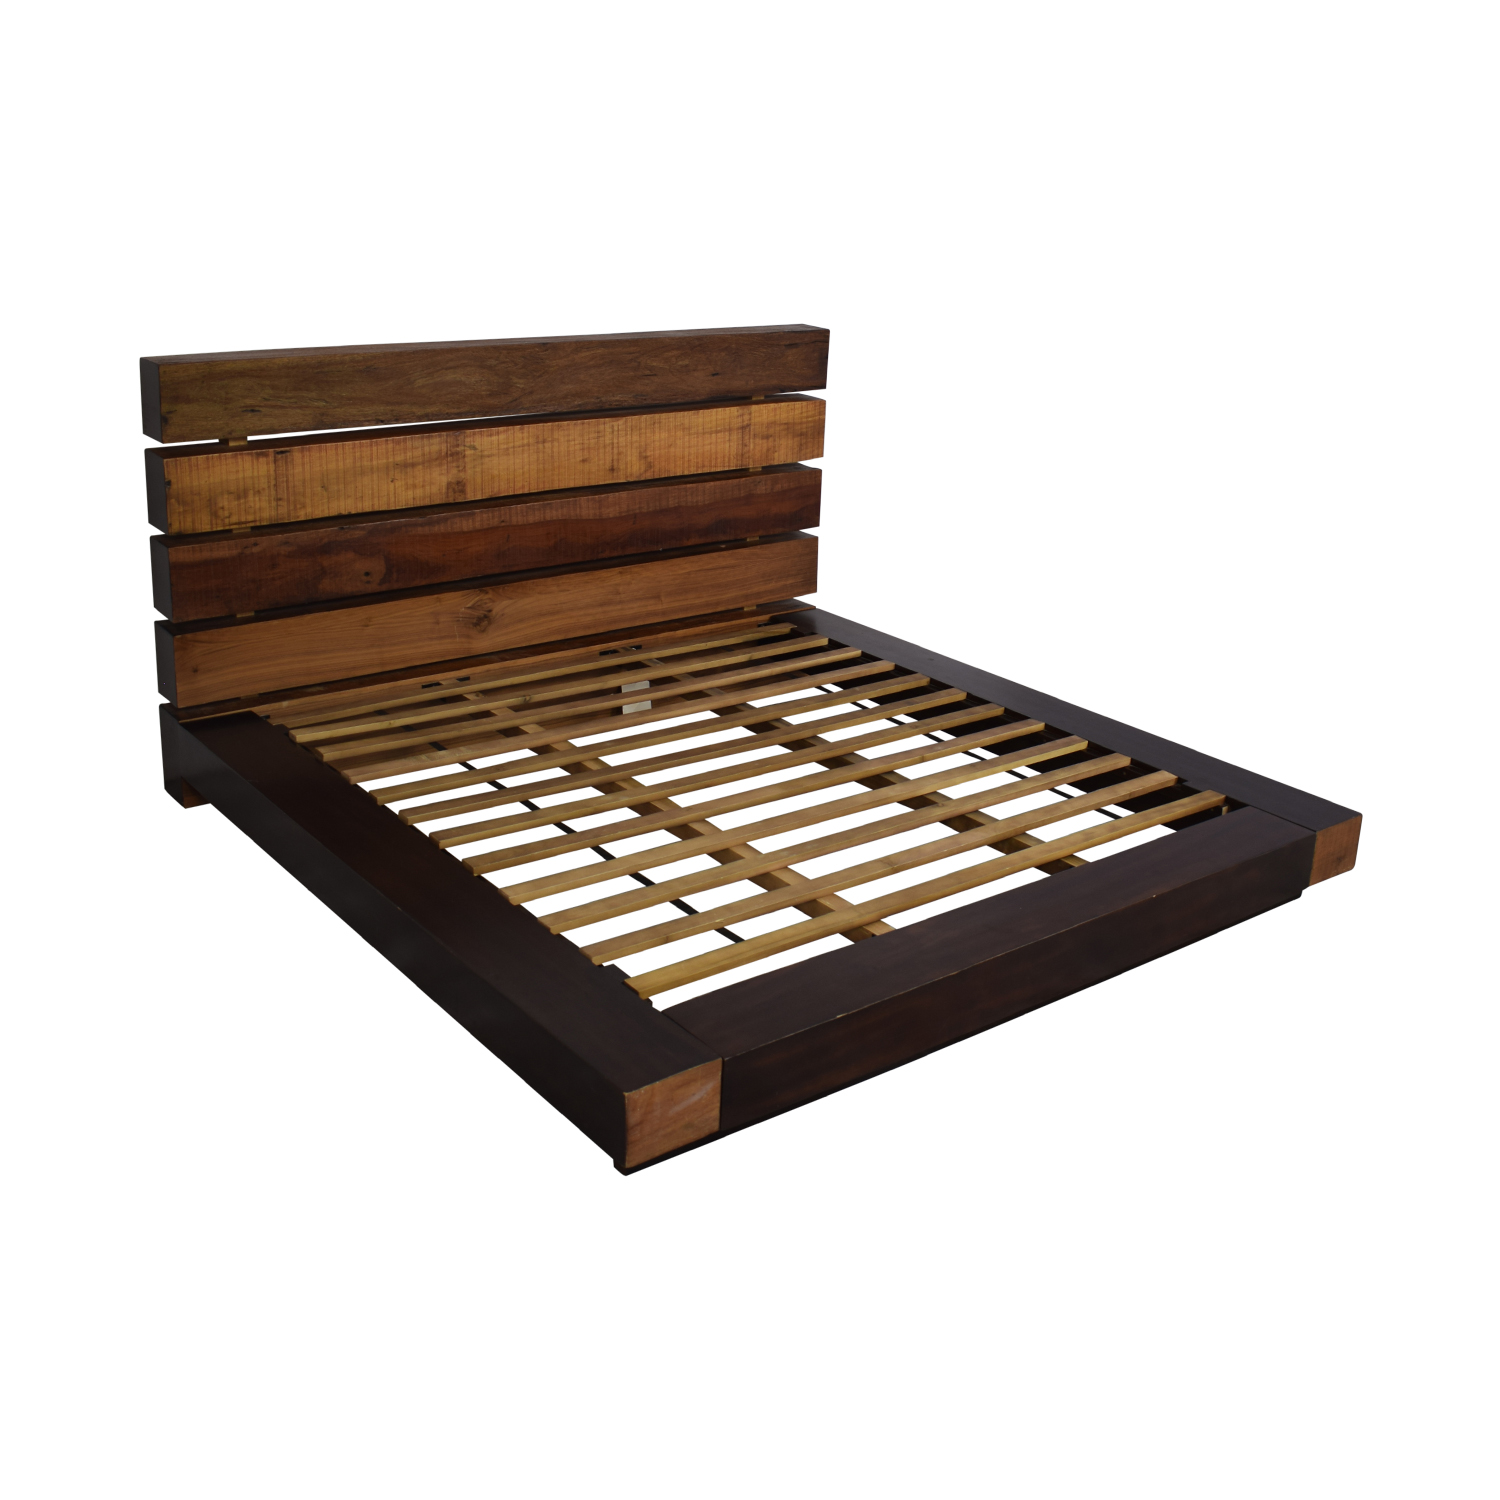 brand new 93b80 5077f 72% OFF - ABC Carpet & Home ABC Carpet & Home King Size Edge Rustic Slat  Bed / Beds